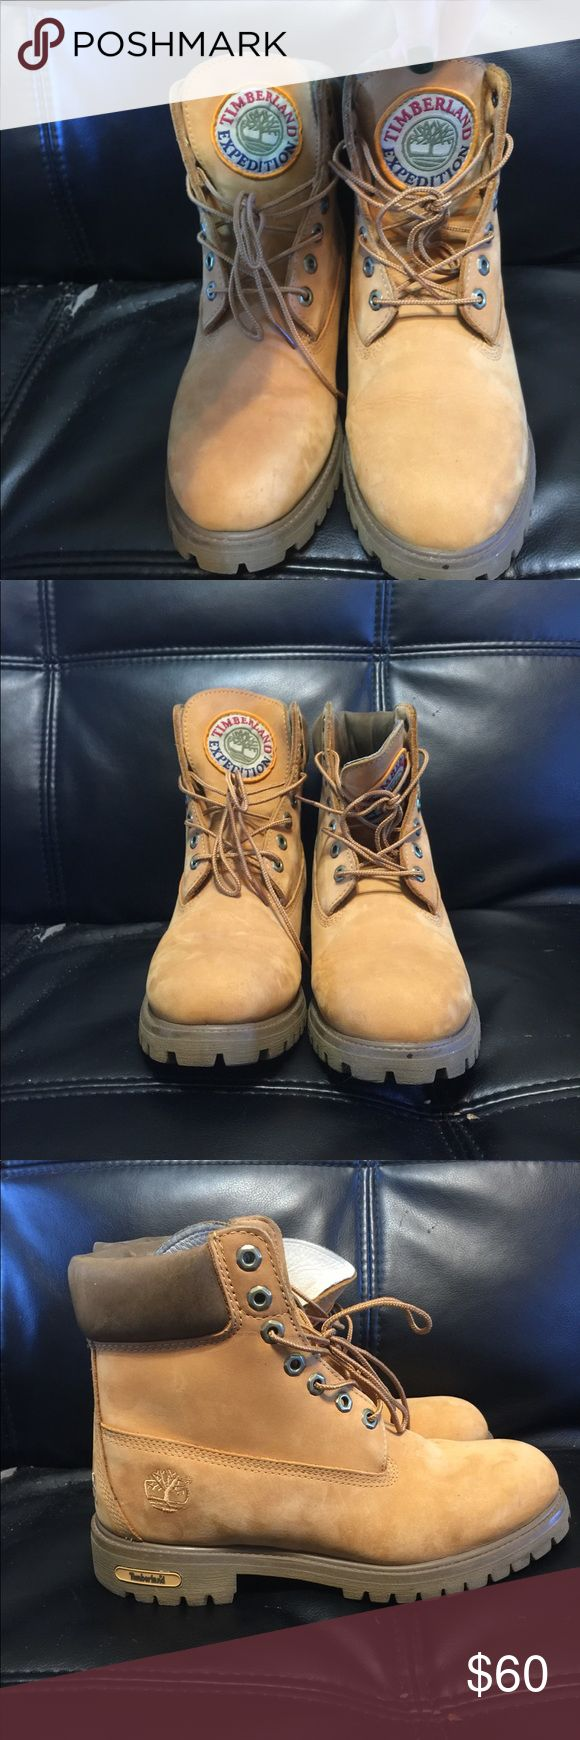 Authentic leather Timberland 1973 expedition boots Great condition authentic leather timberland expedition boots. Men's size 8.5. Timberland Shoes Winter & Rain Boots